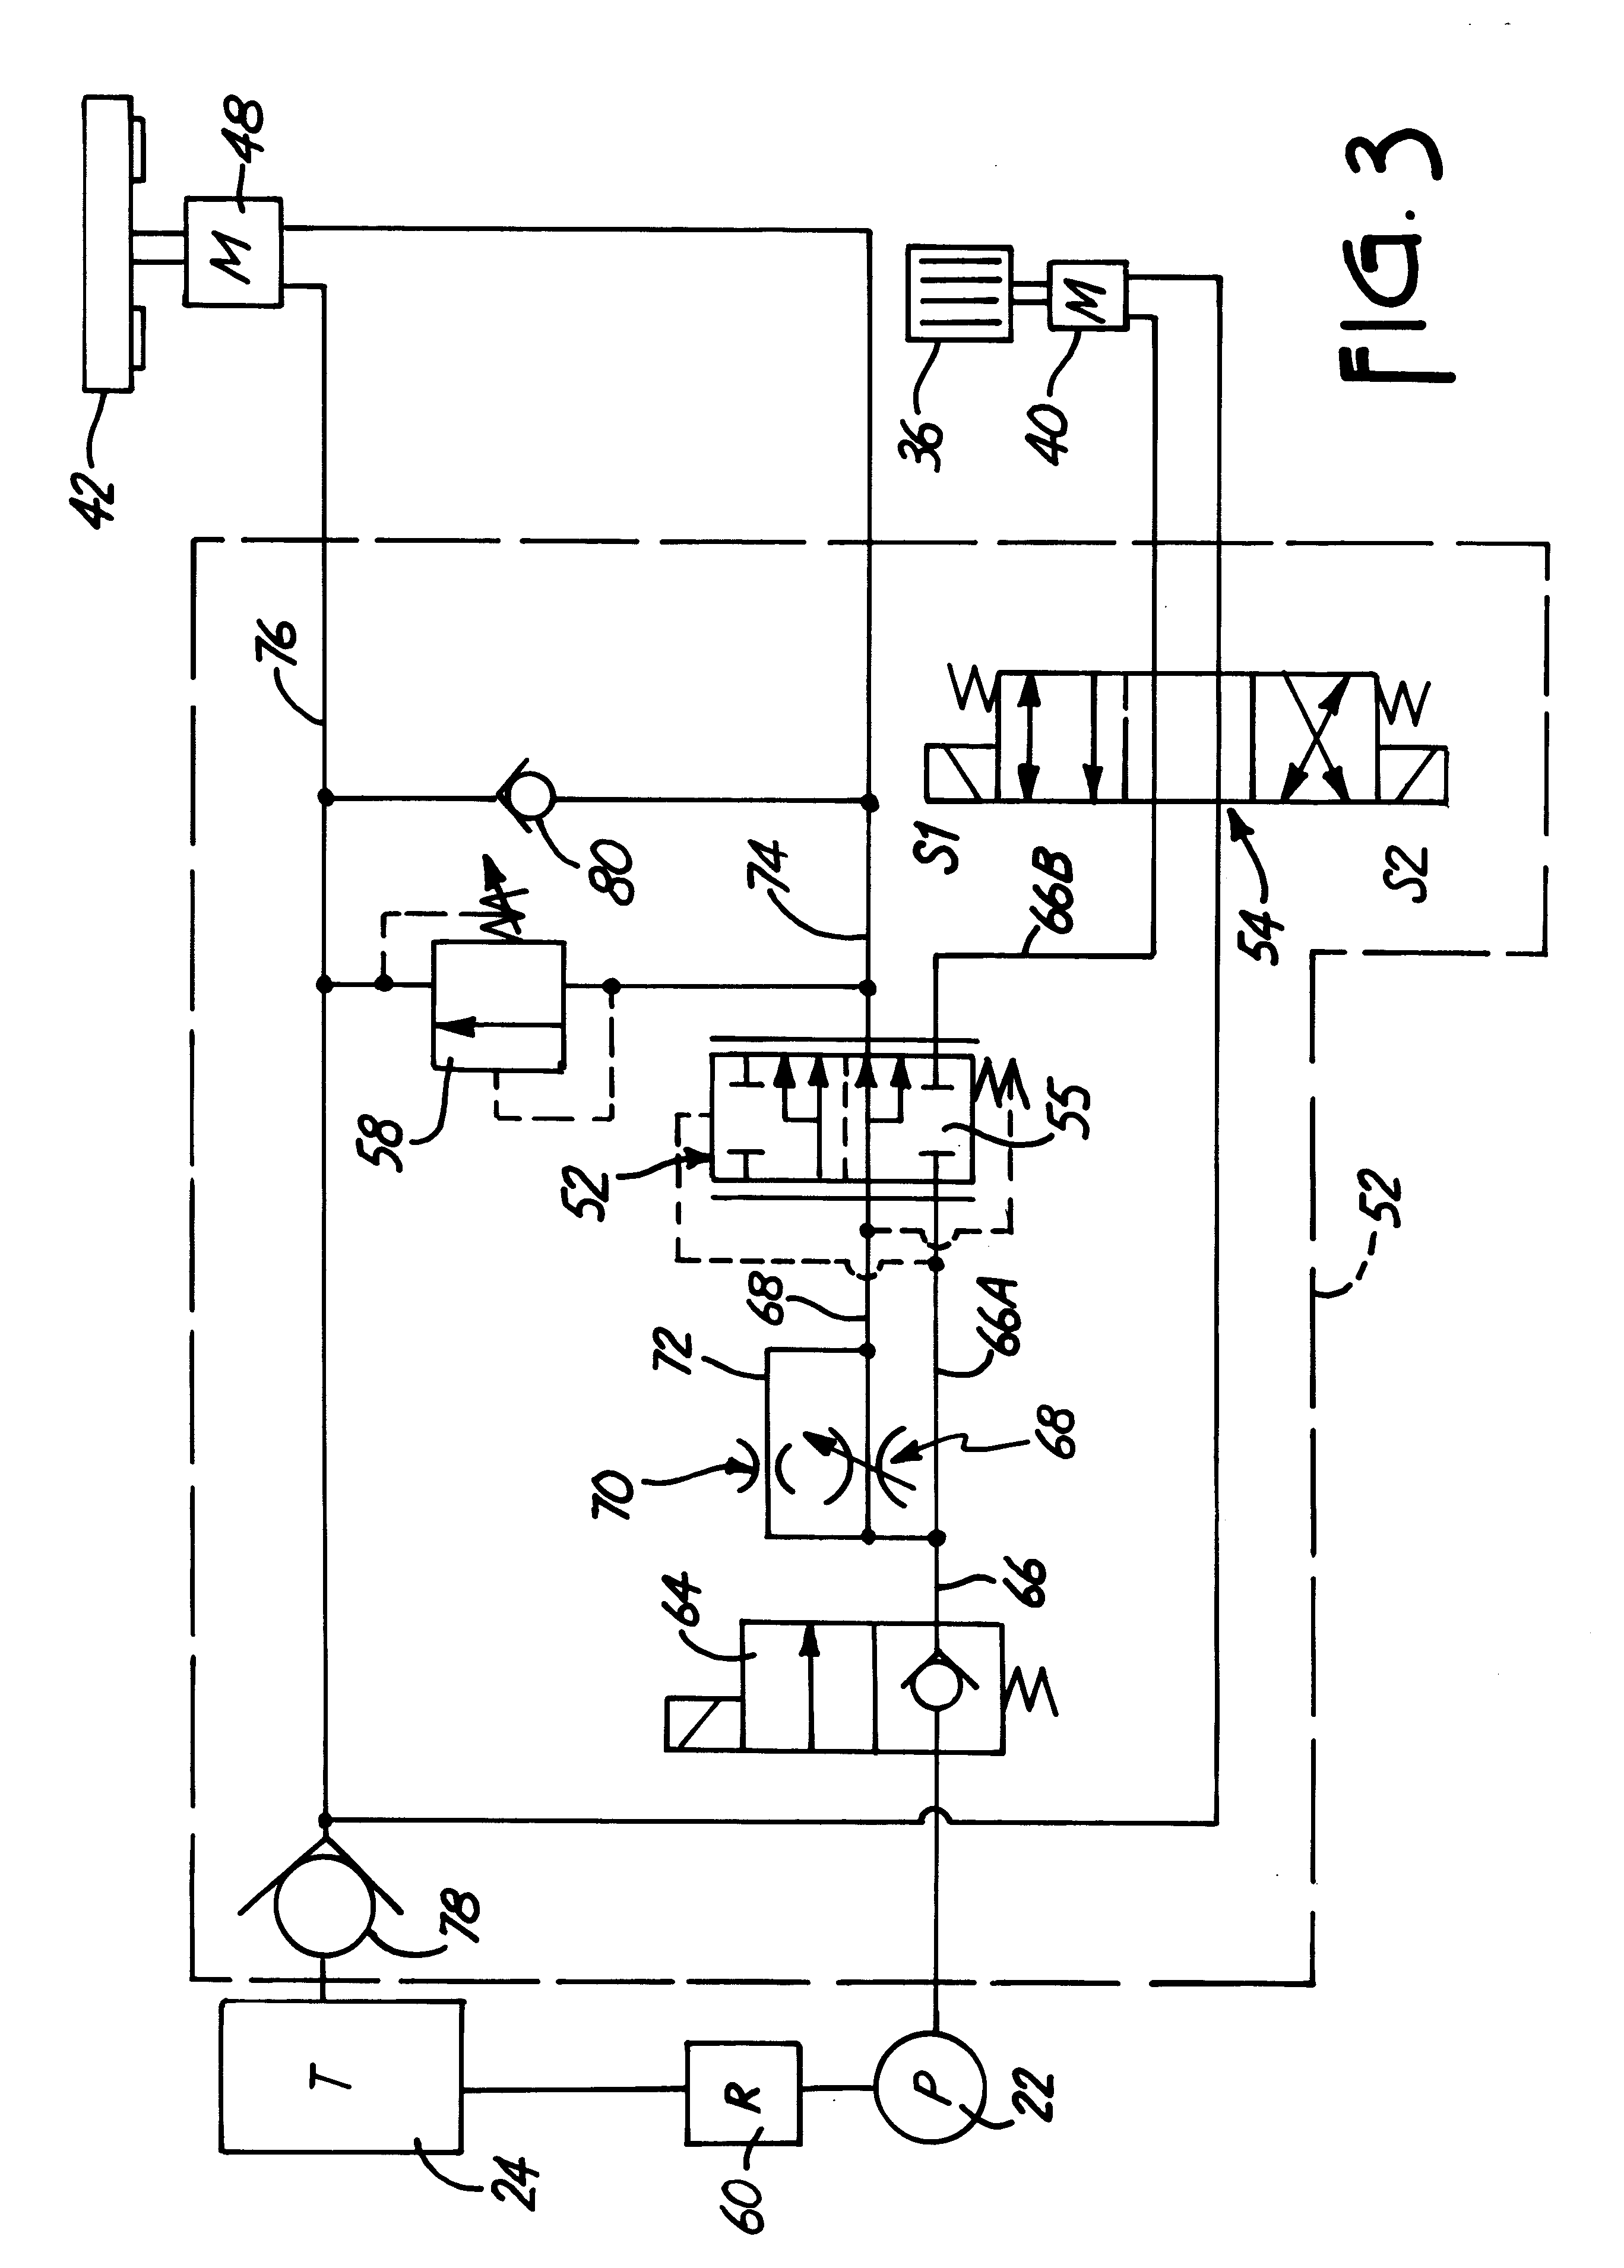 Vermeer Stump Grinder >> Patent US6293479 - Feed control hydraulic circuit for wood ...